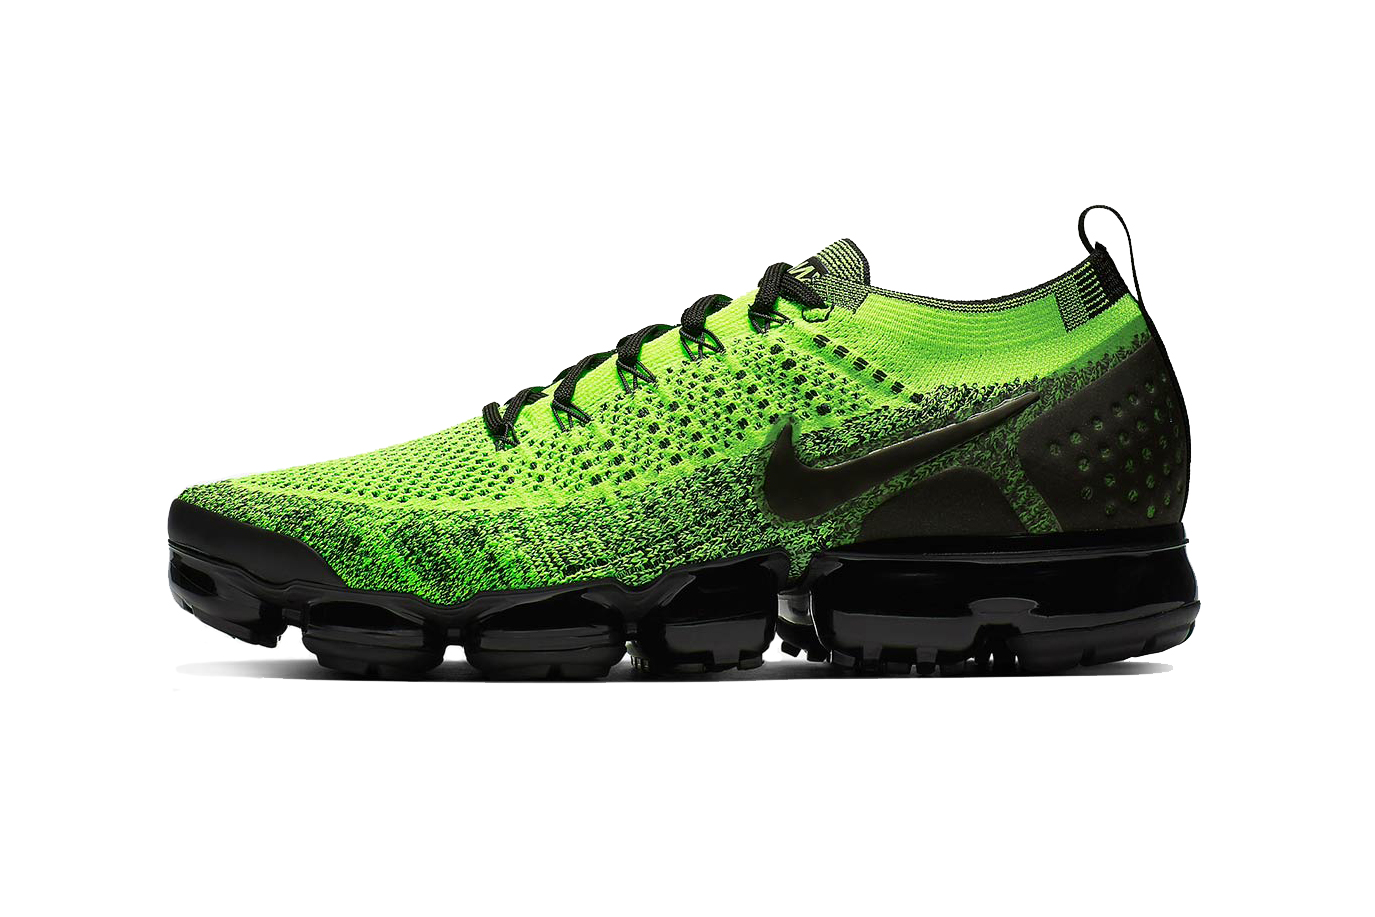 nike air vapormax 2 neon green black 2019 footwear nike running nike sportswear volt sneakers shoes